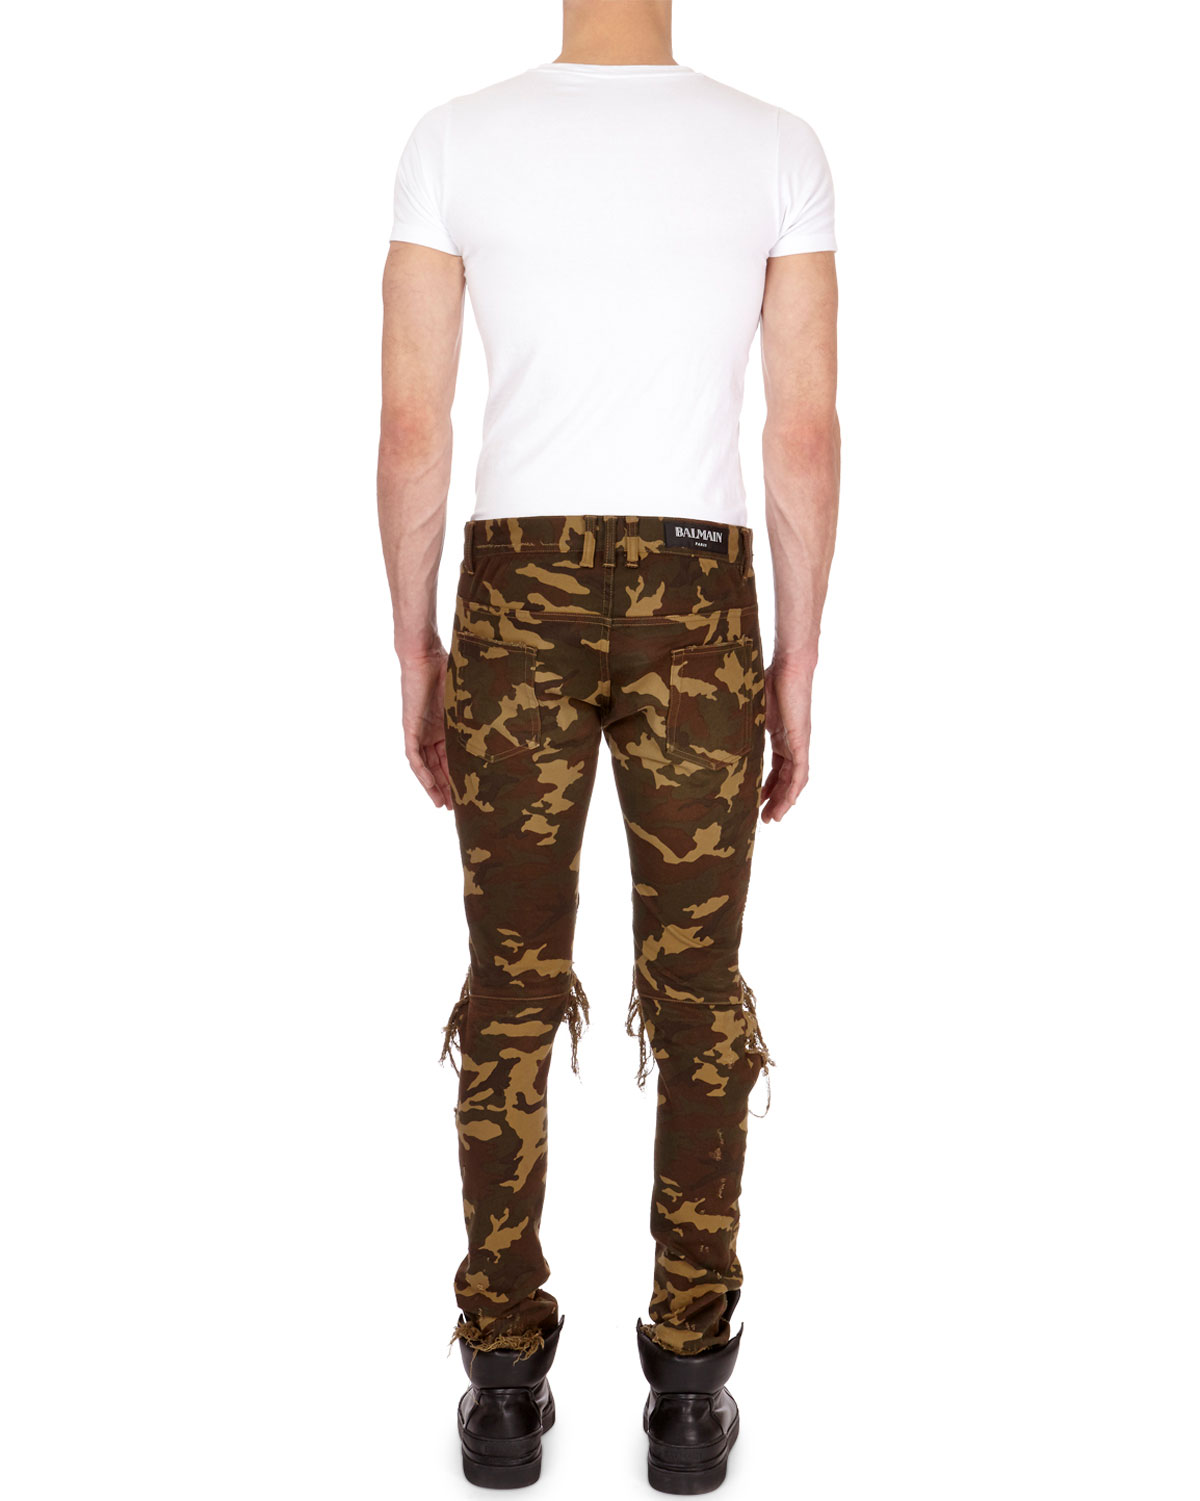 7d7a3a7d Balmain Distressed Camo Moto Skinny Jeans | Neiman Marcus